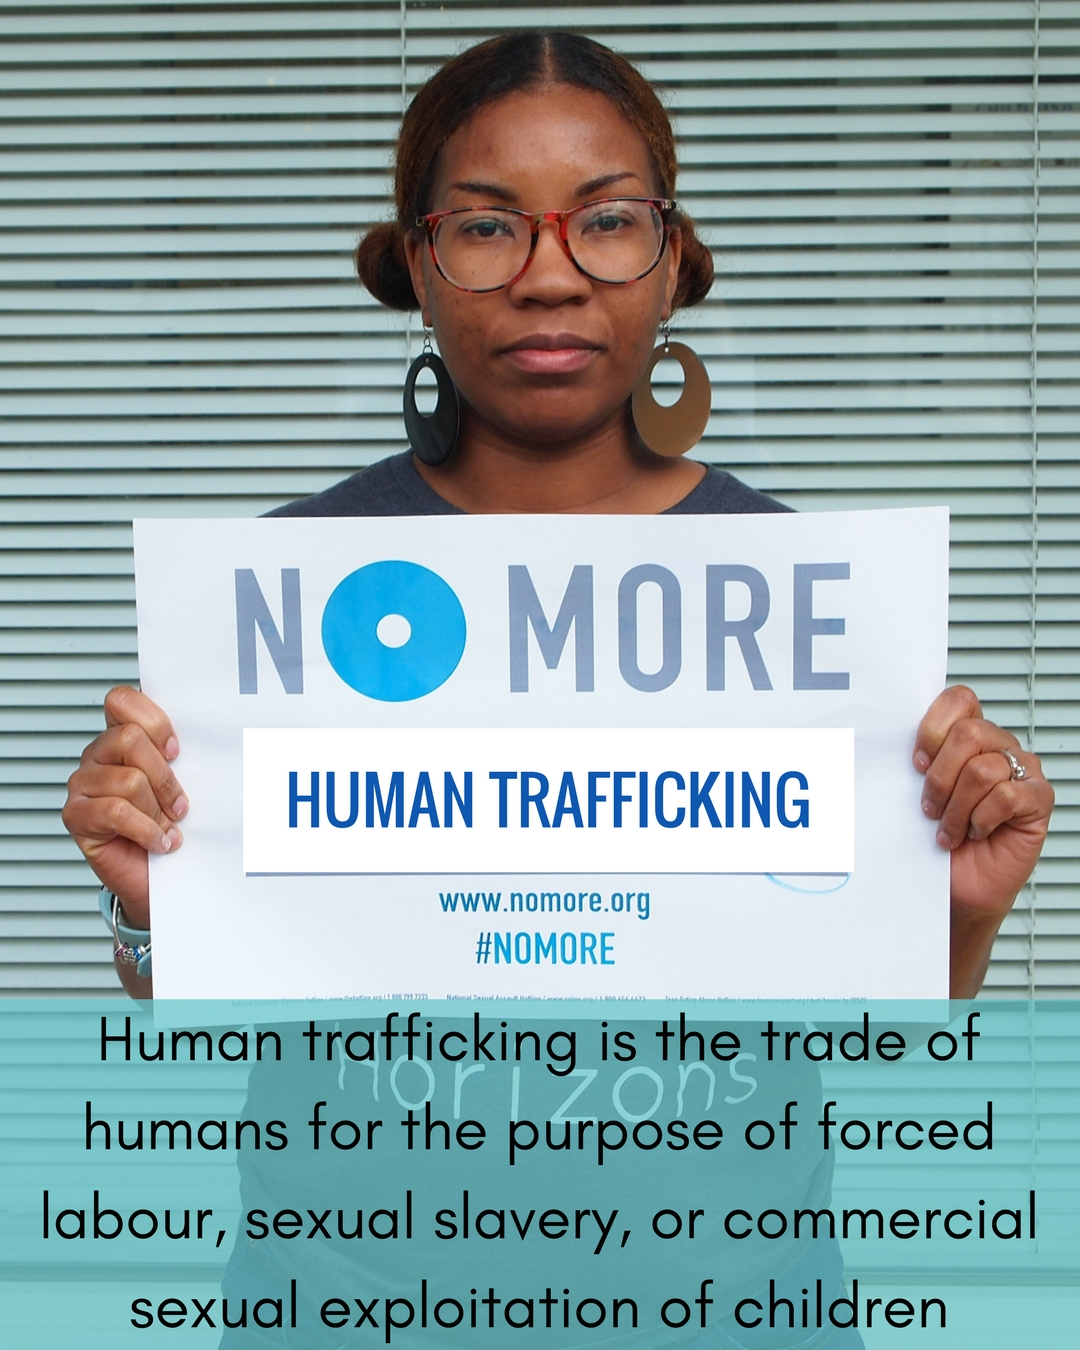 No More Campaign-Human Trafficking